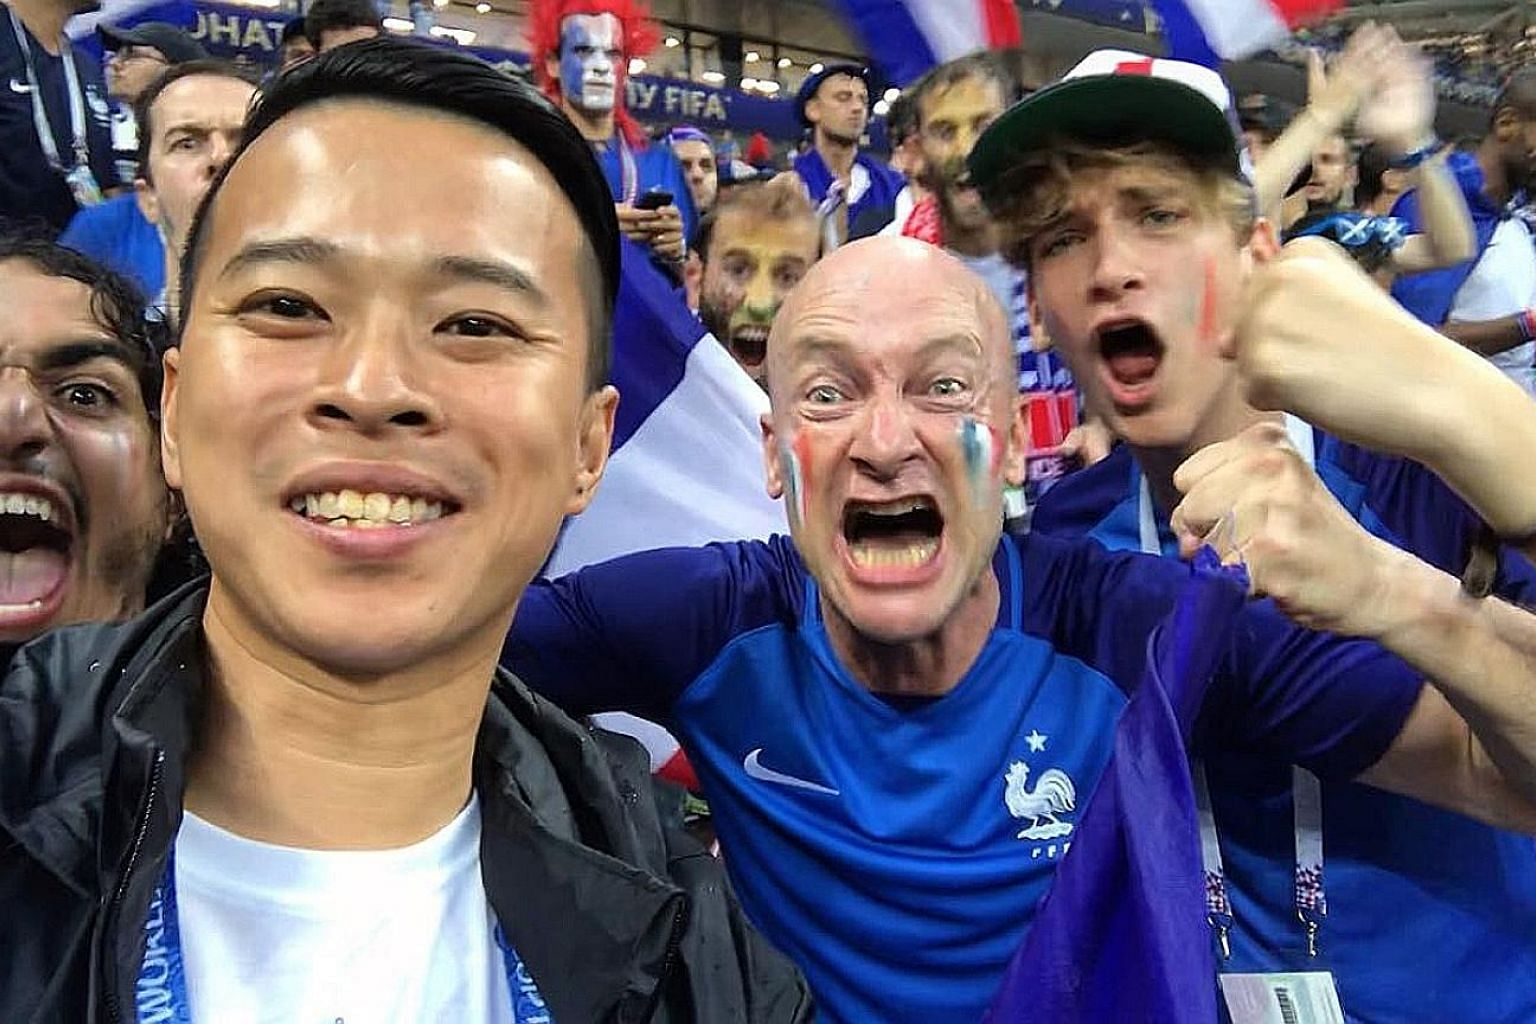 Clockwise, from top left: A downpour could not douse the euphoria of the French fans as our man in Russia joined them in their celebrations after the final. The late sunset by the Volga River in Samara was simply a sight to behold. David Lee with the